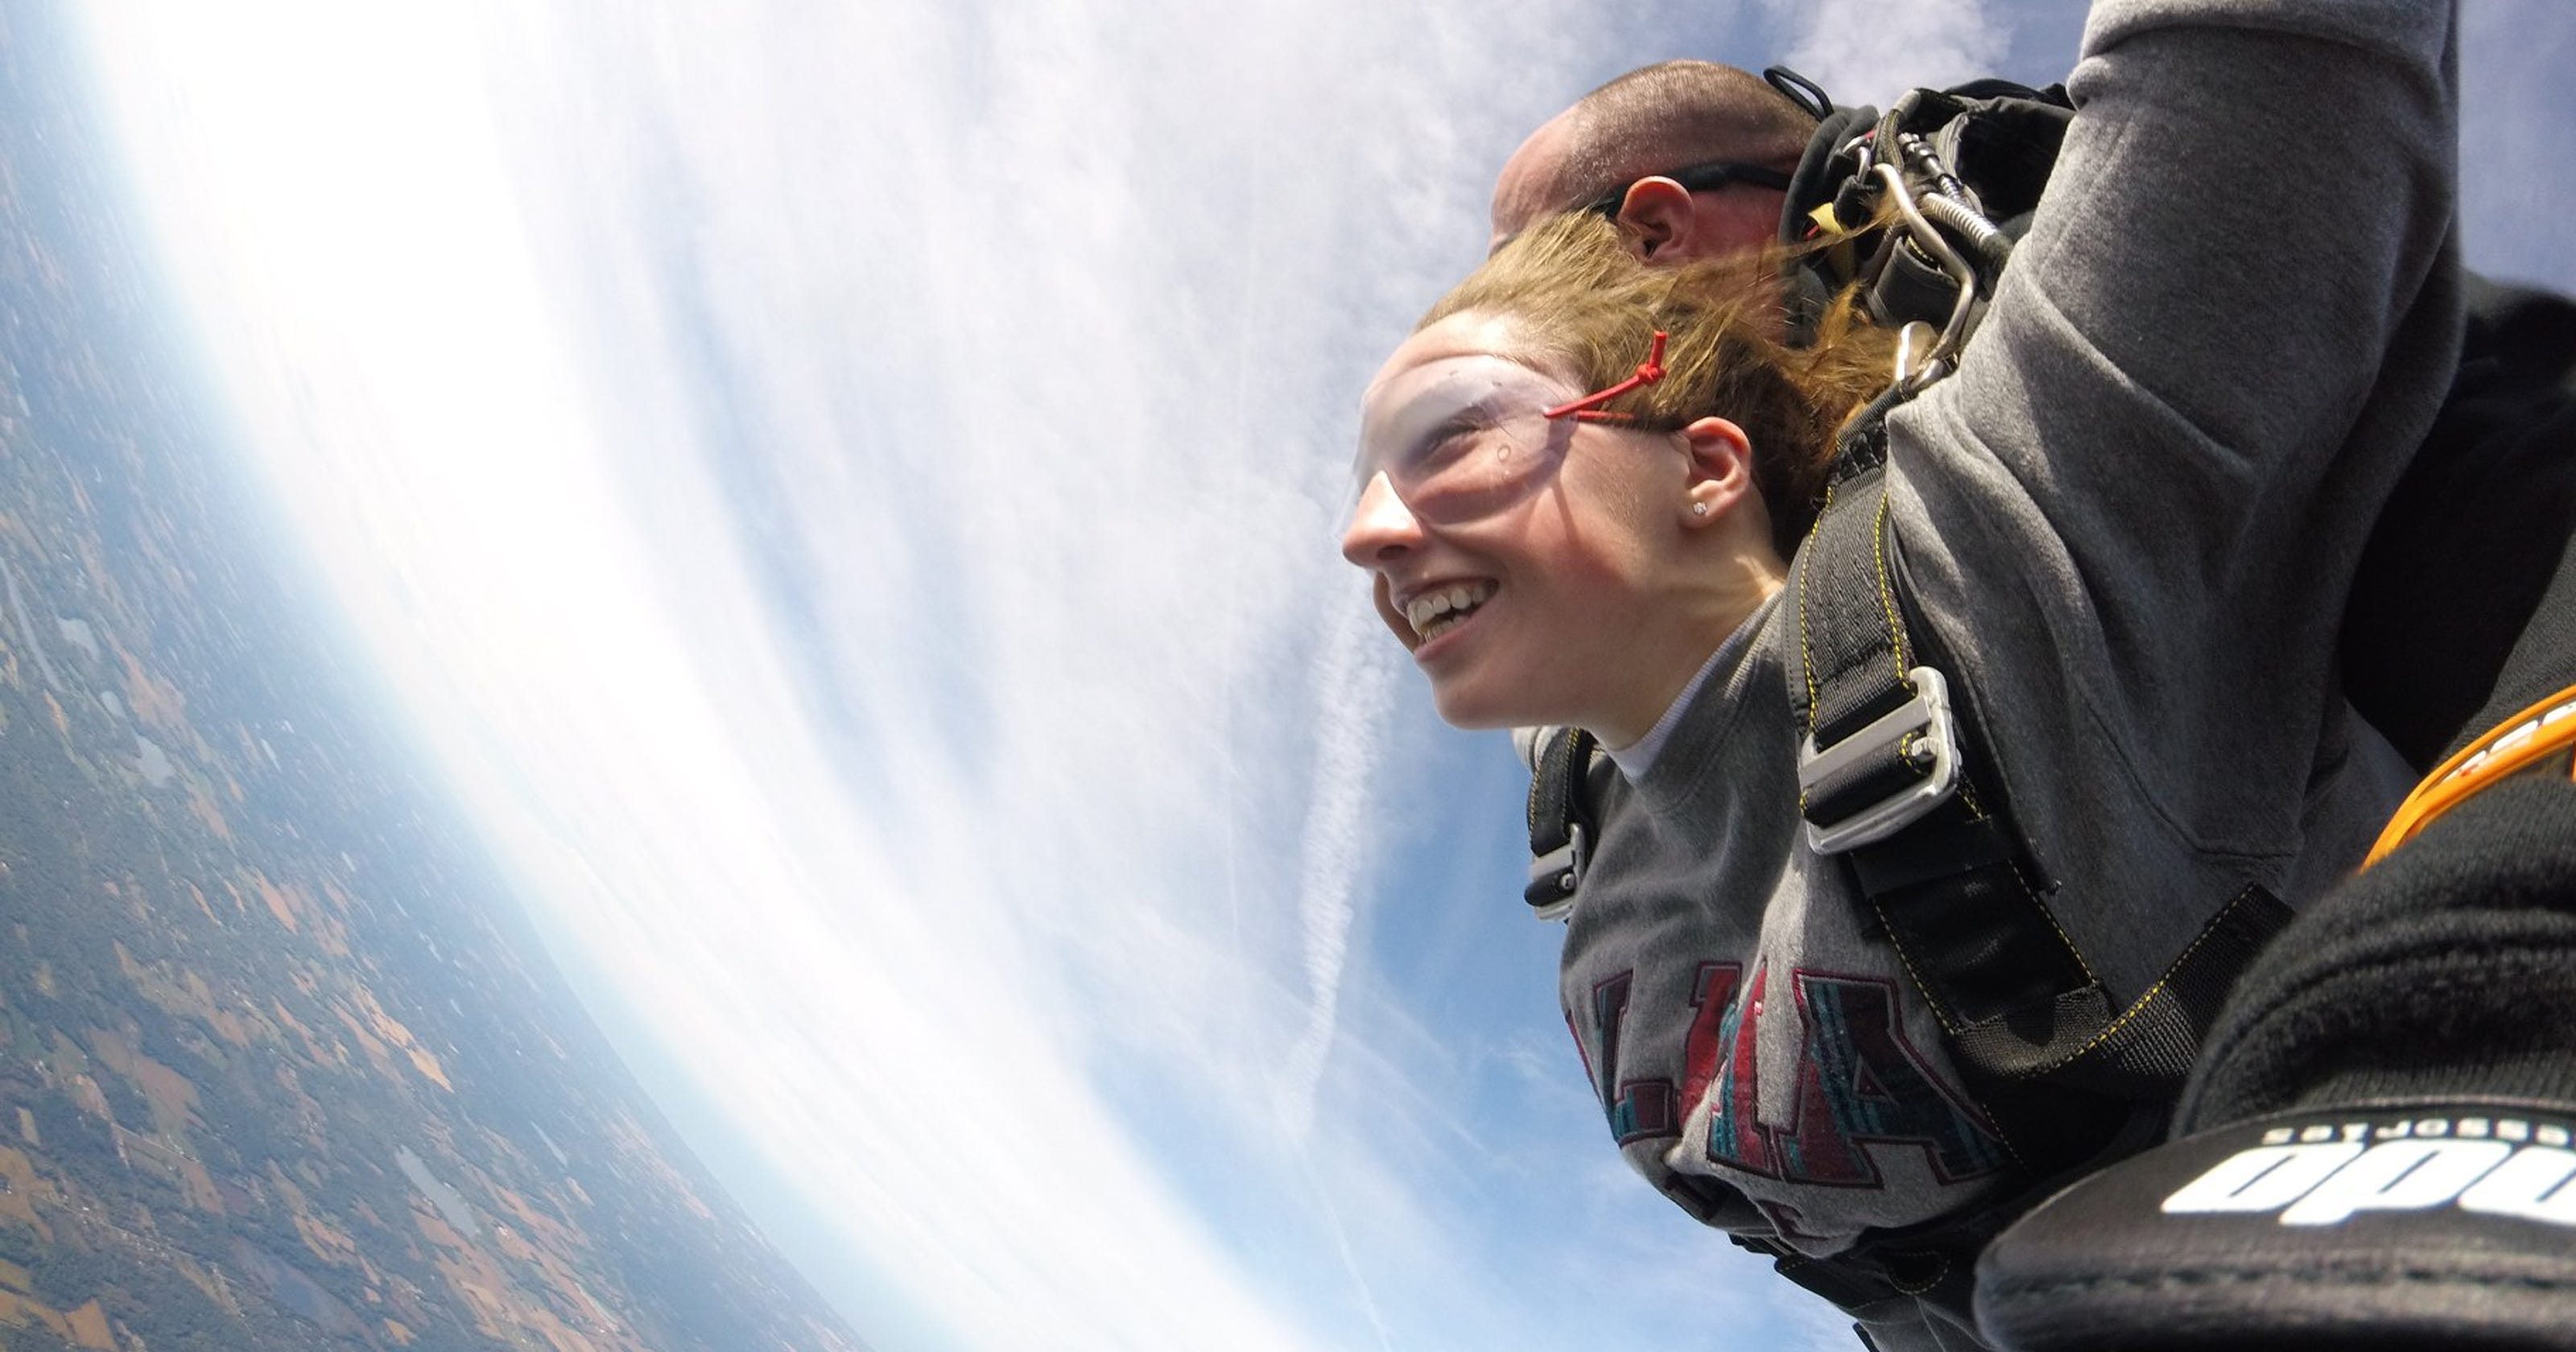 Western Michigan University students soaring in skydive club